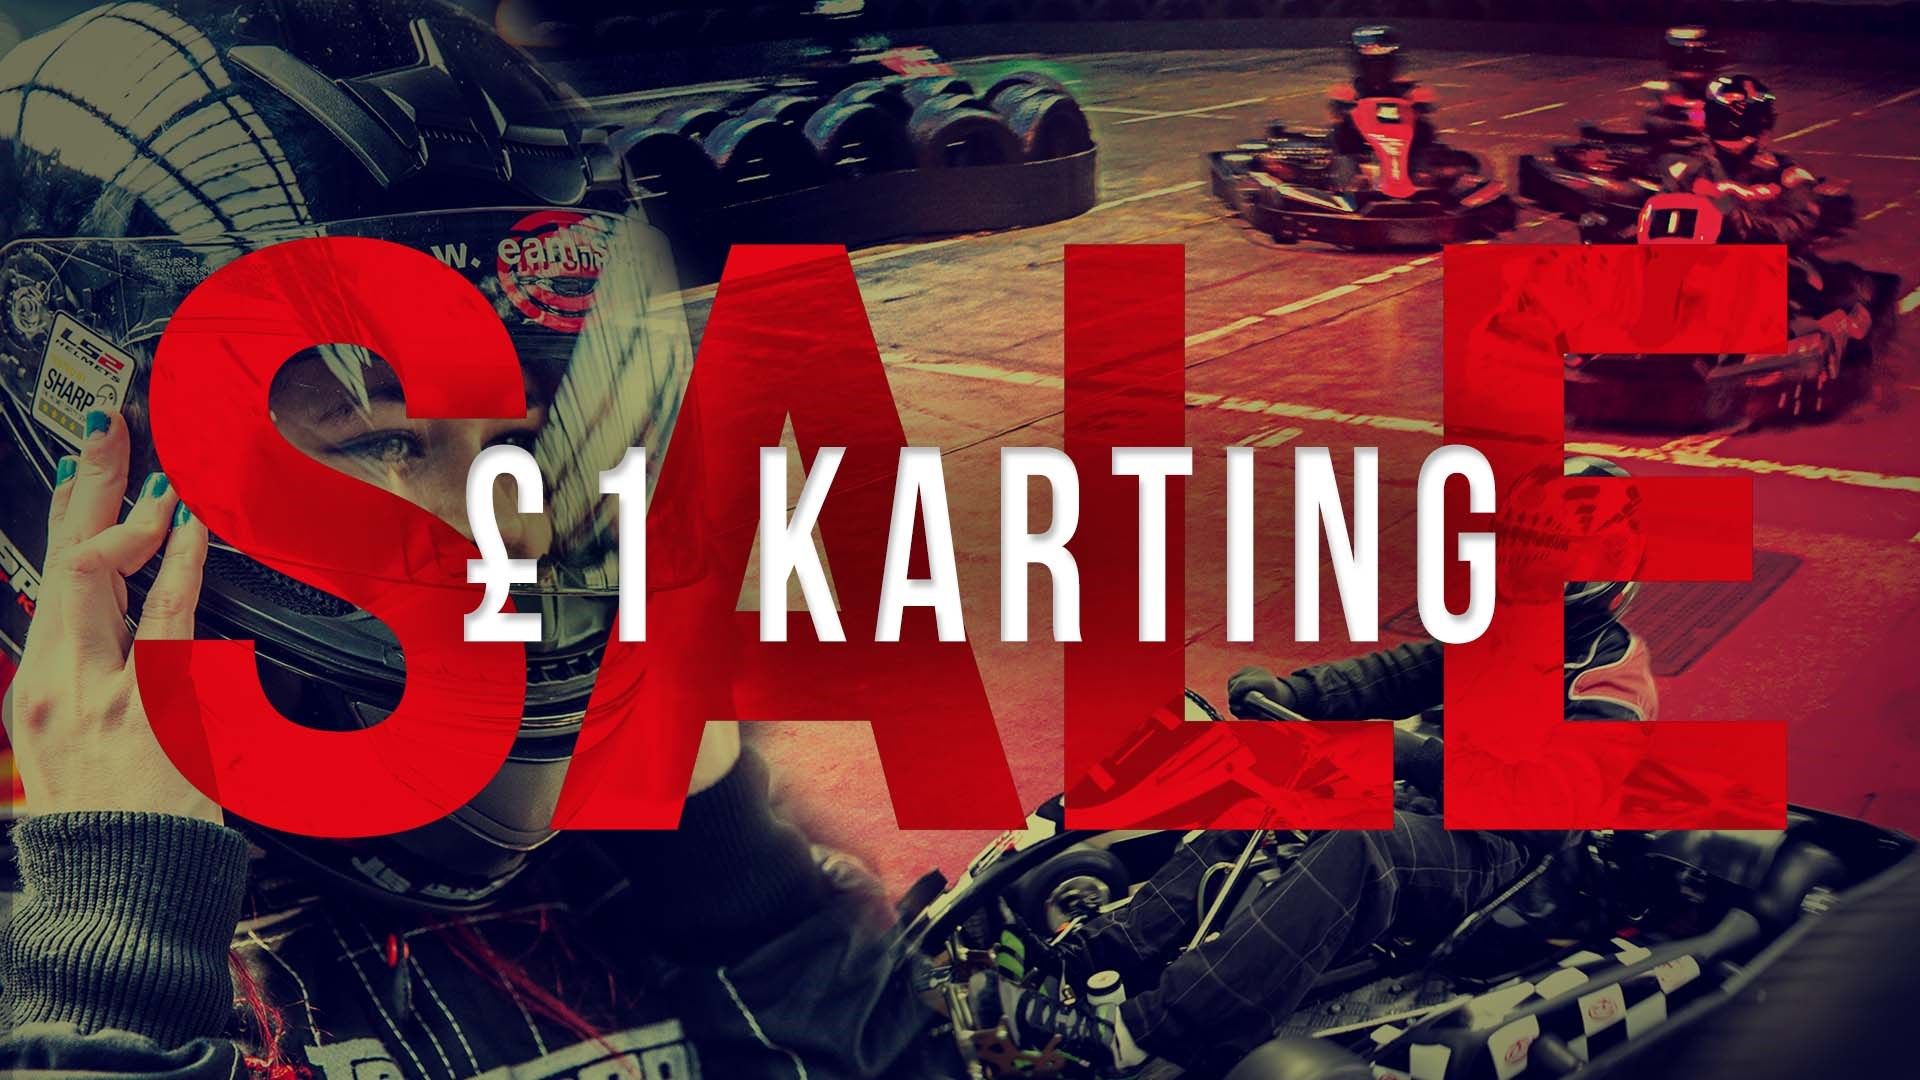 £1 Karting December 2018 Website Header-min.jpg